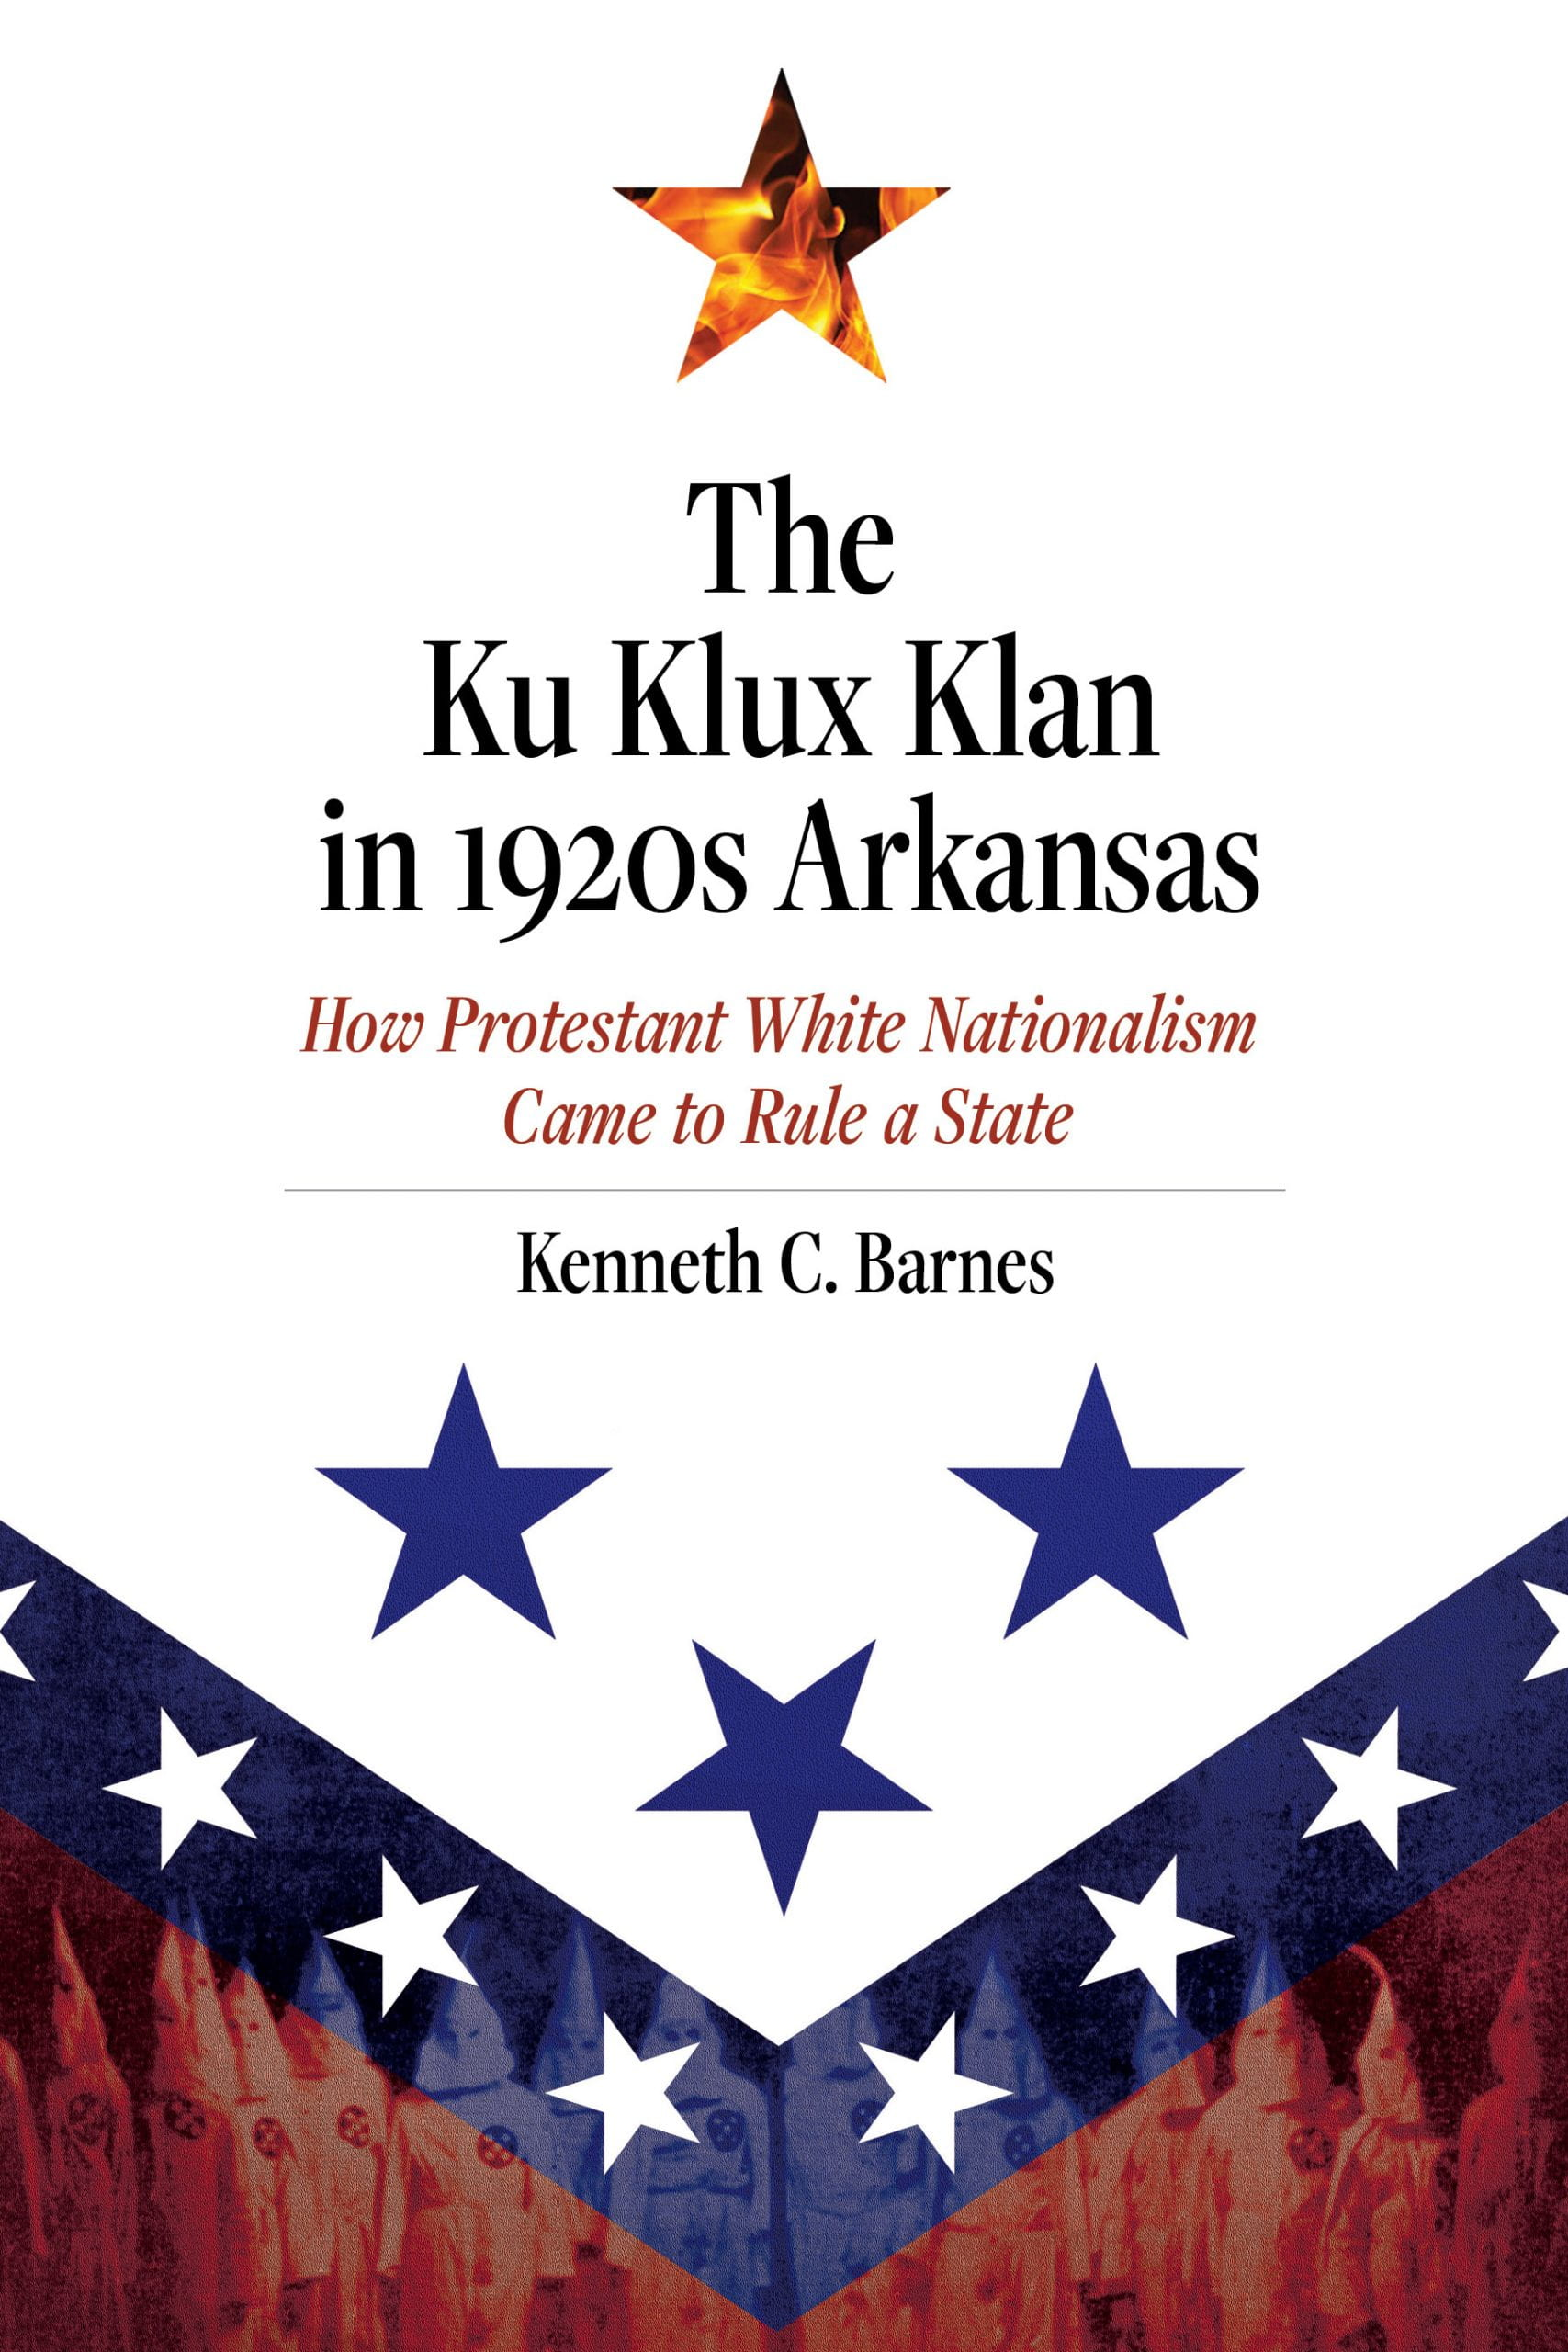 cover image for The Ku Klux Klan in 1920s Arkansas by Kenneth Barnes